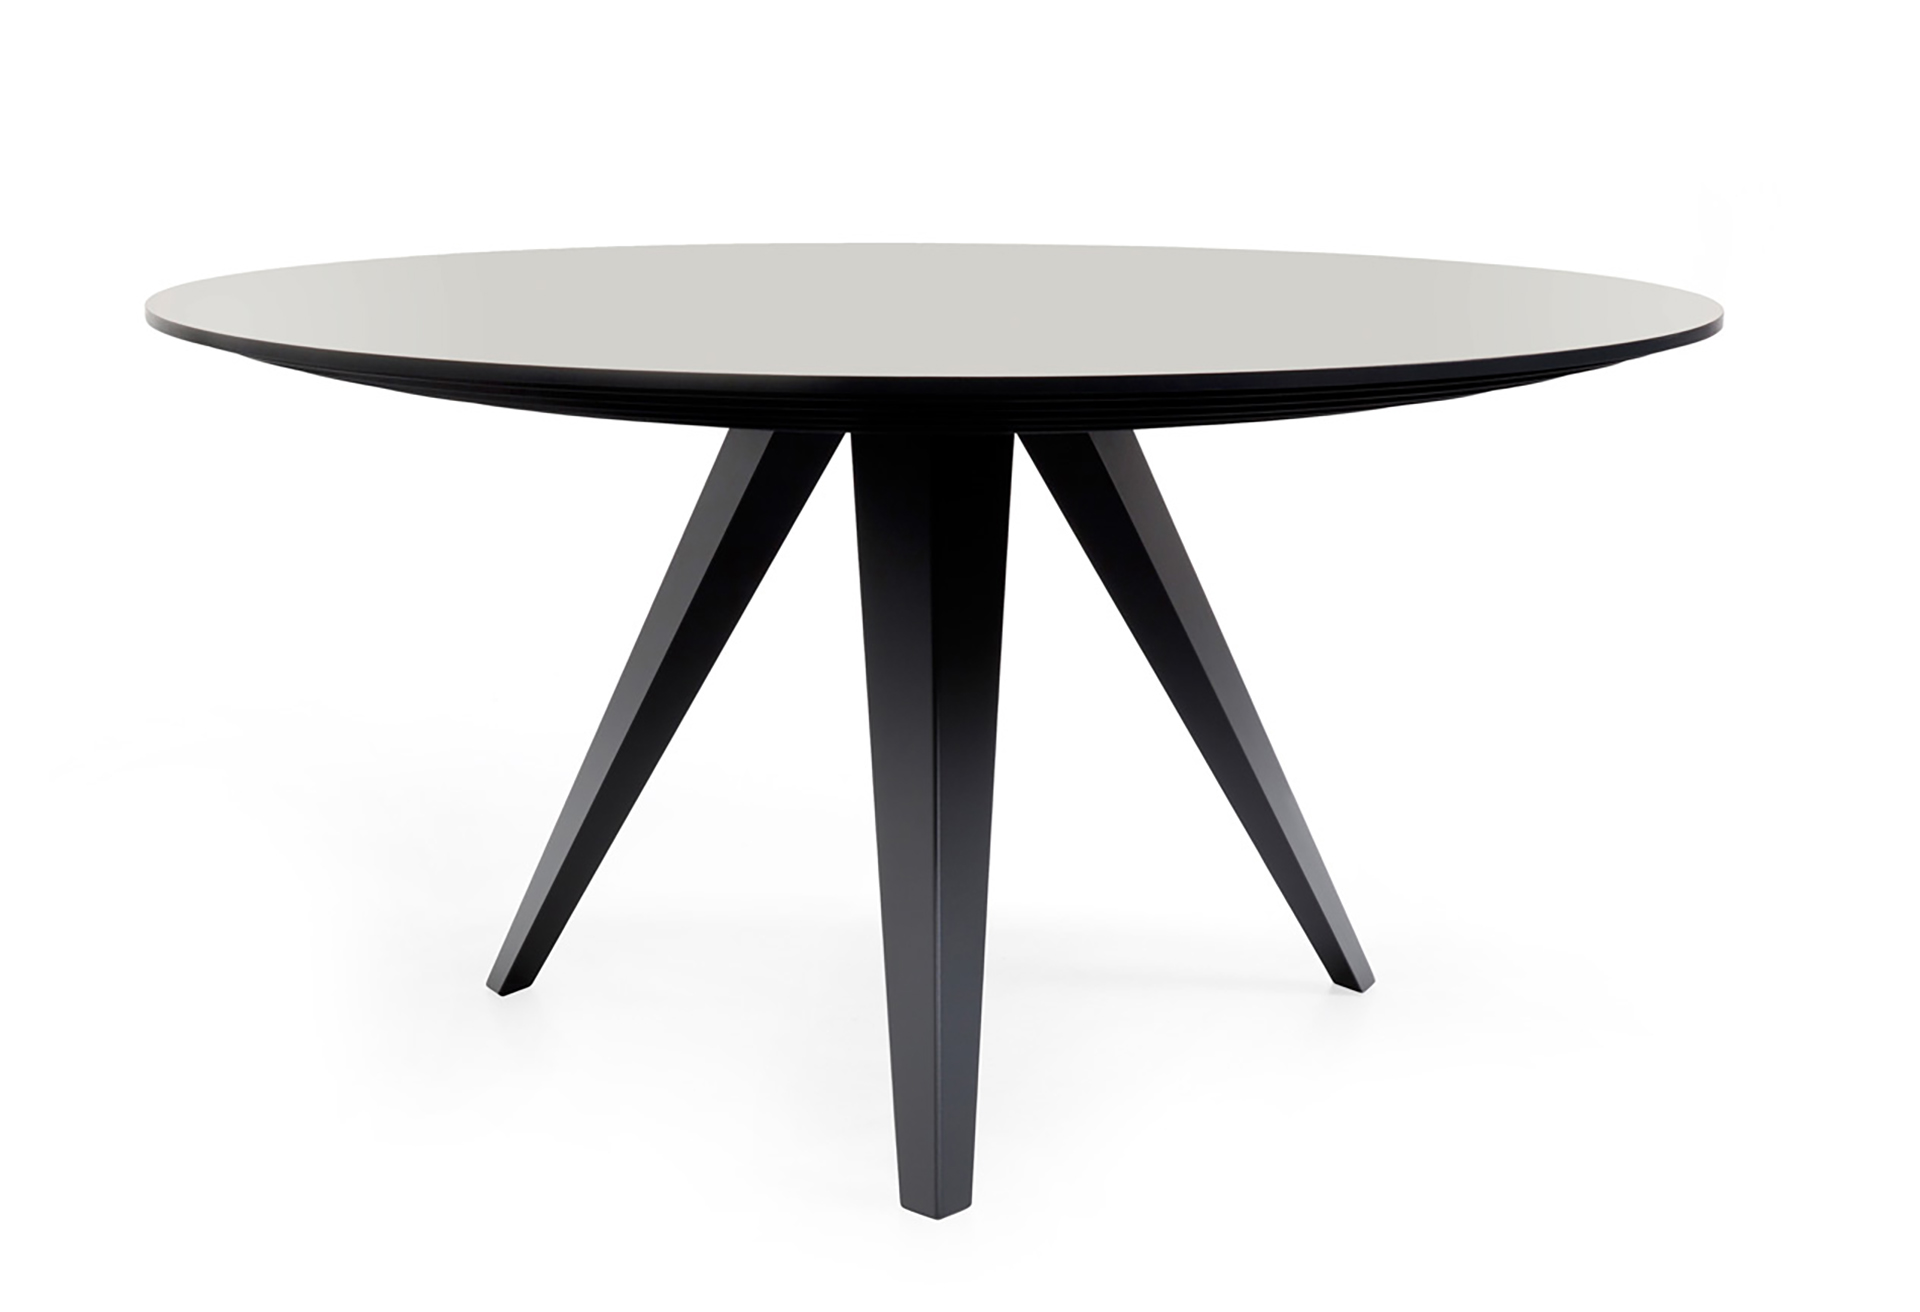 Ronde eettafel belly l kees marcelis l odesi your dutch design